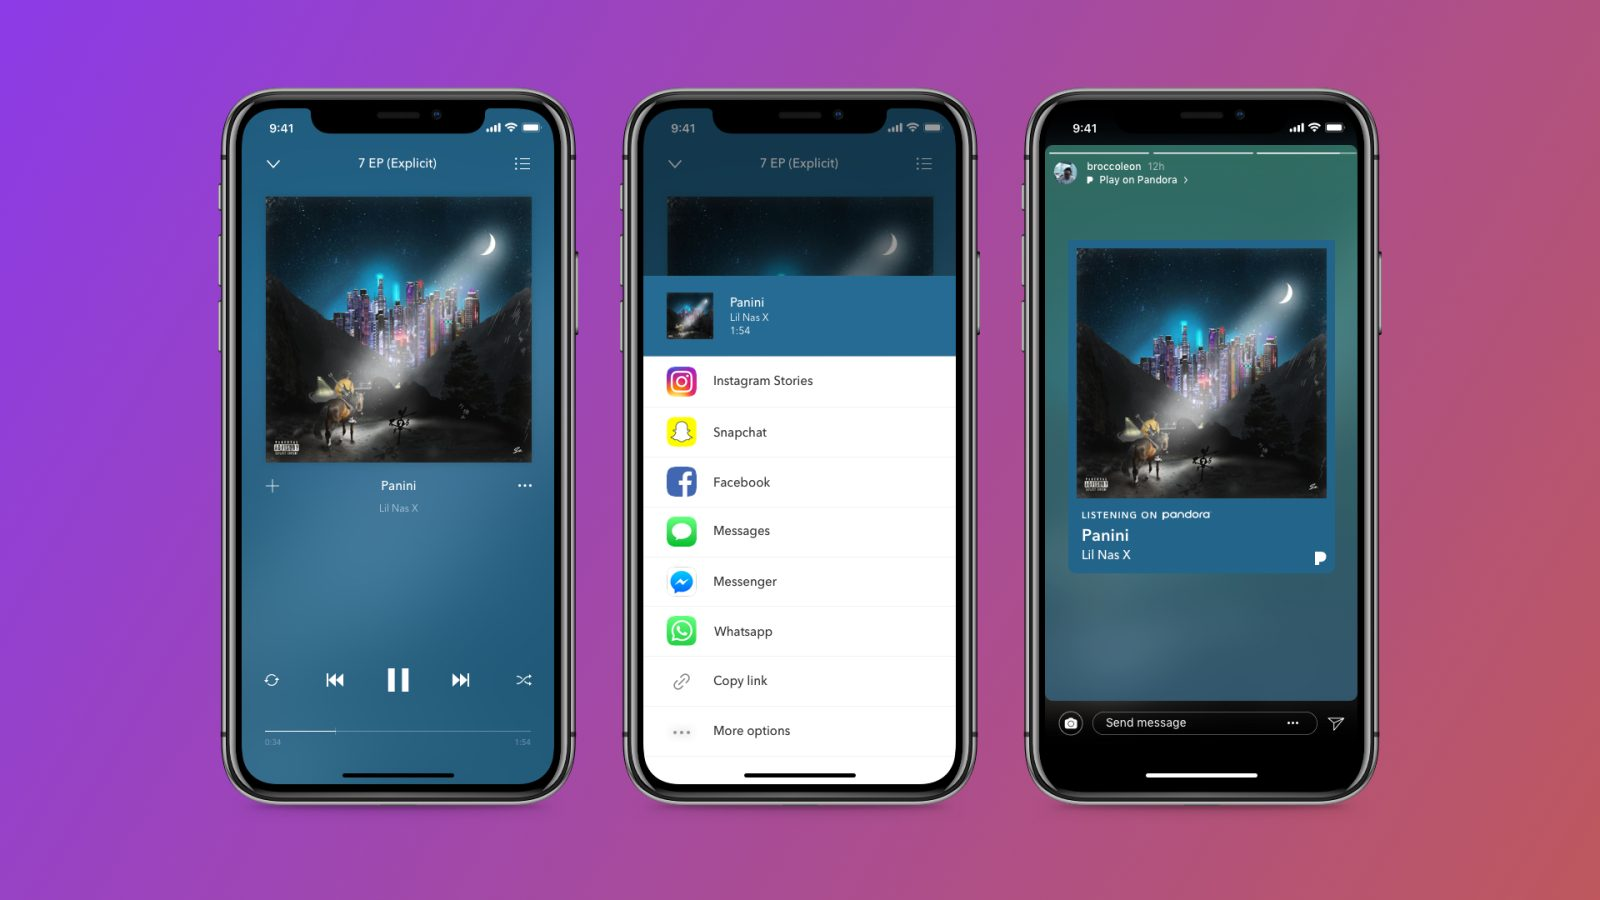 Pandora now integrates with Instagram Stories - 9to5Mac